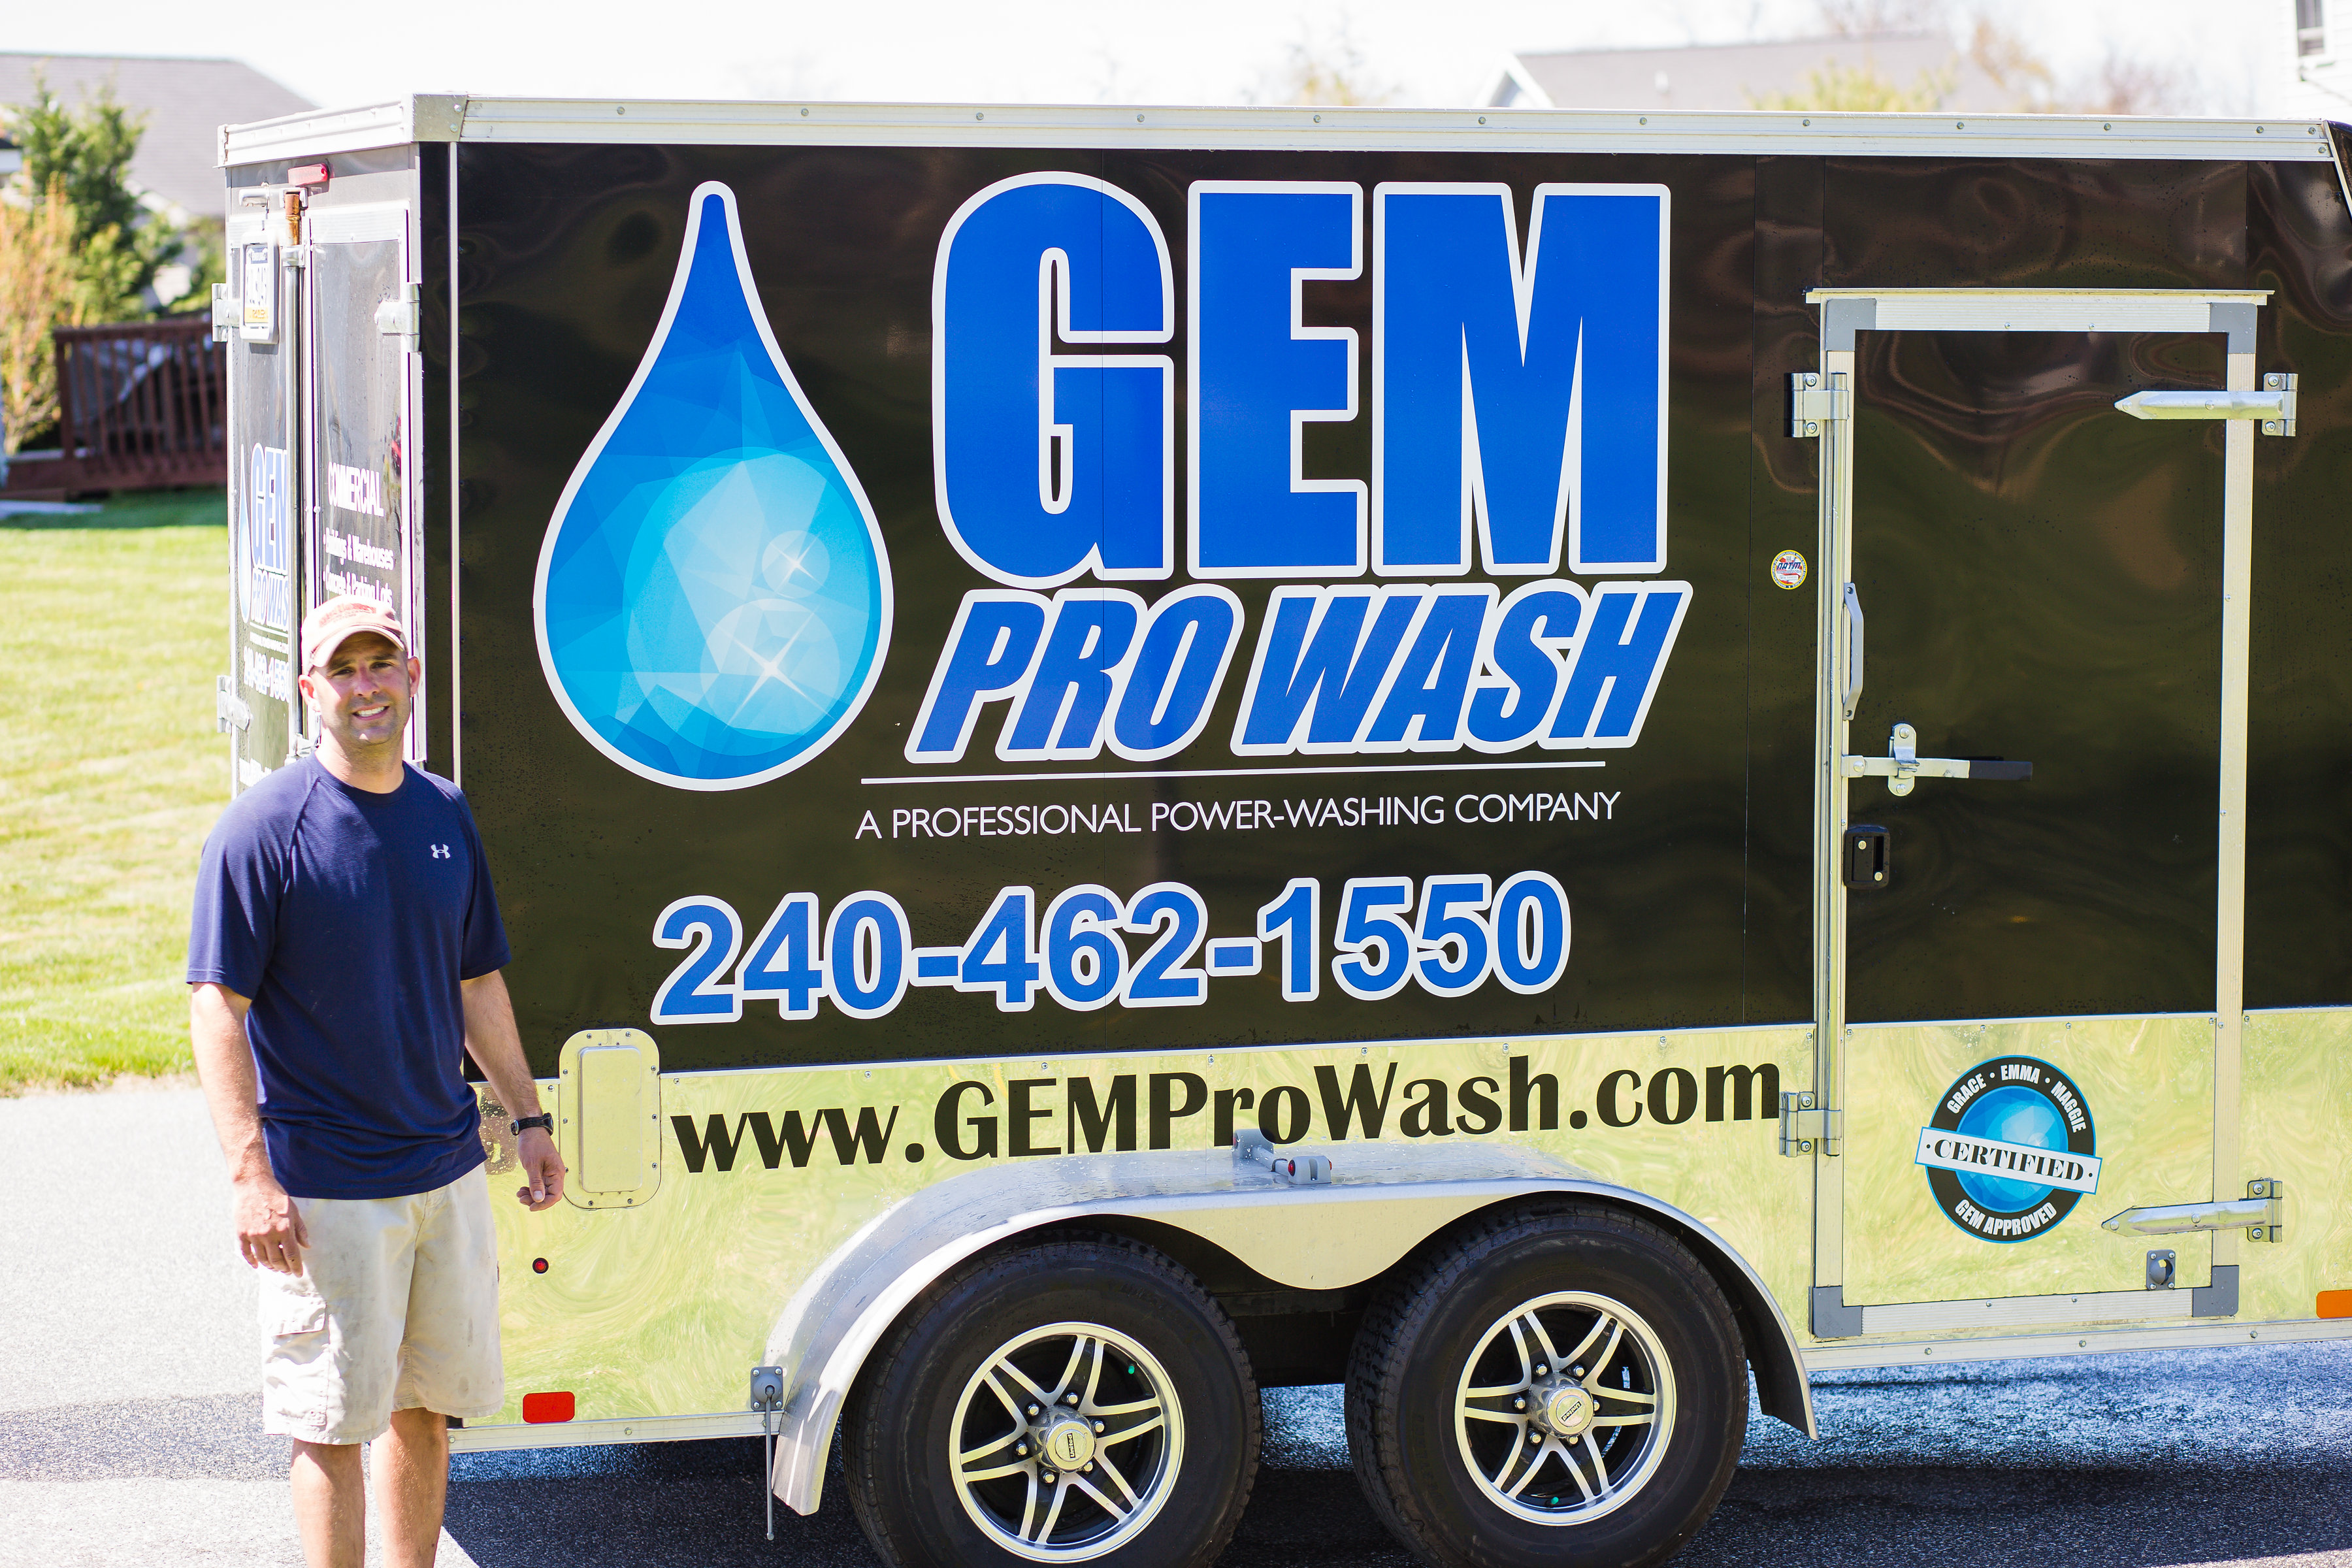 Gem Pro Wash | Power Washing Service in Fayetteville PA